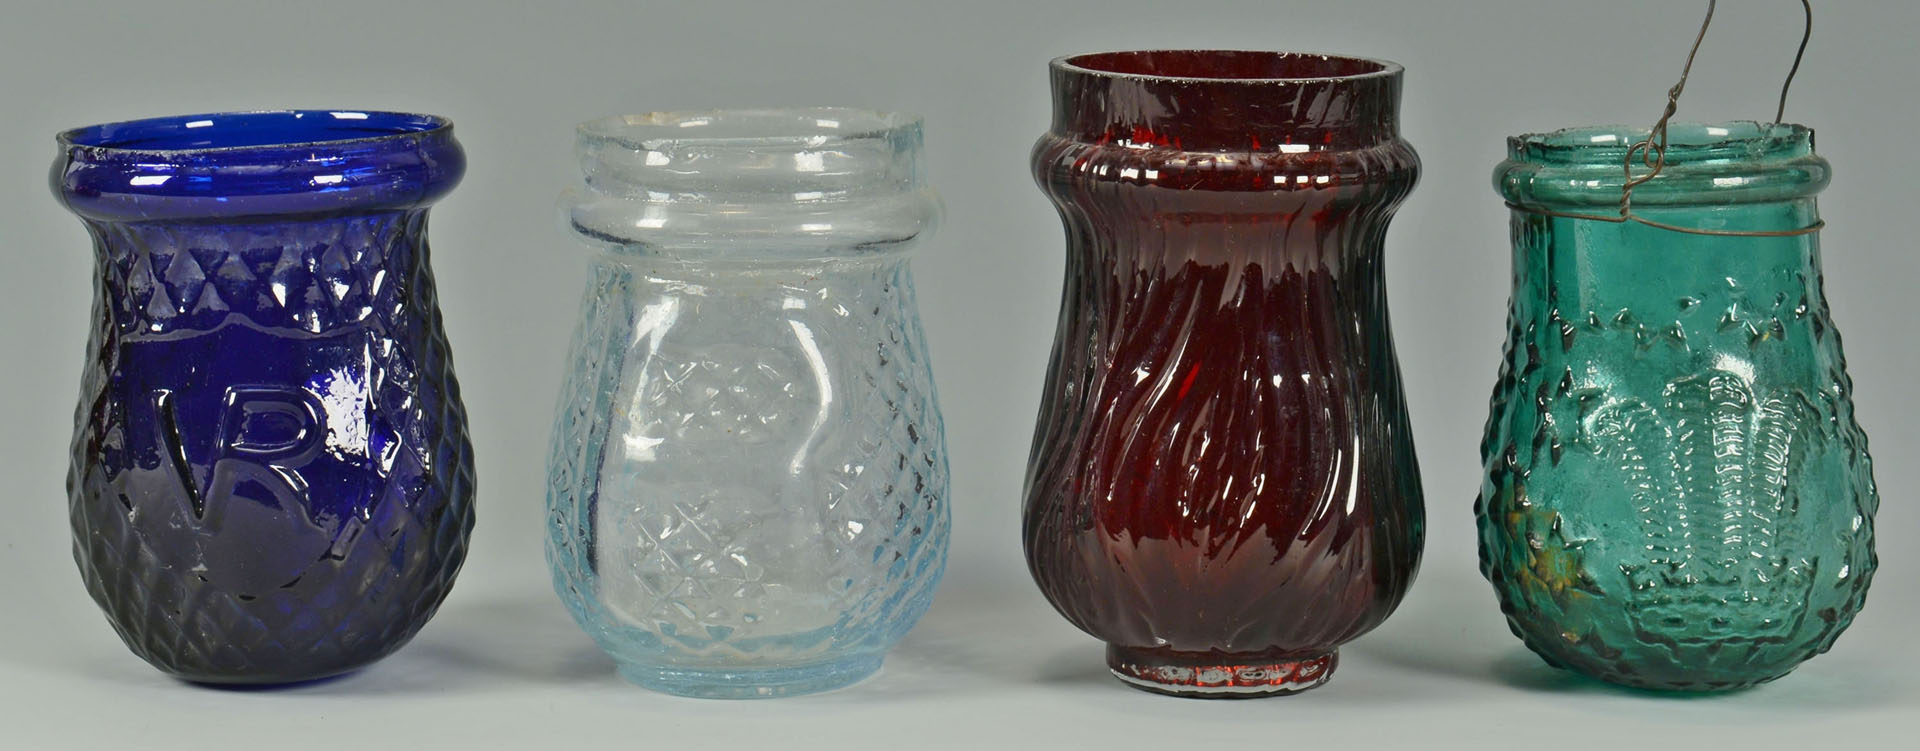 Lot 520: 12 Colored Christmas lights, lanterns, and vase